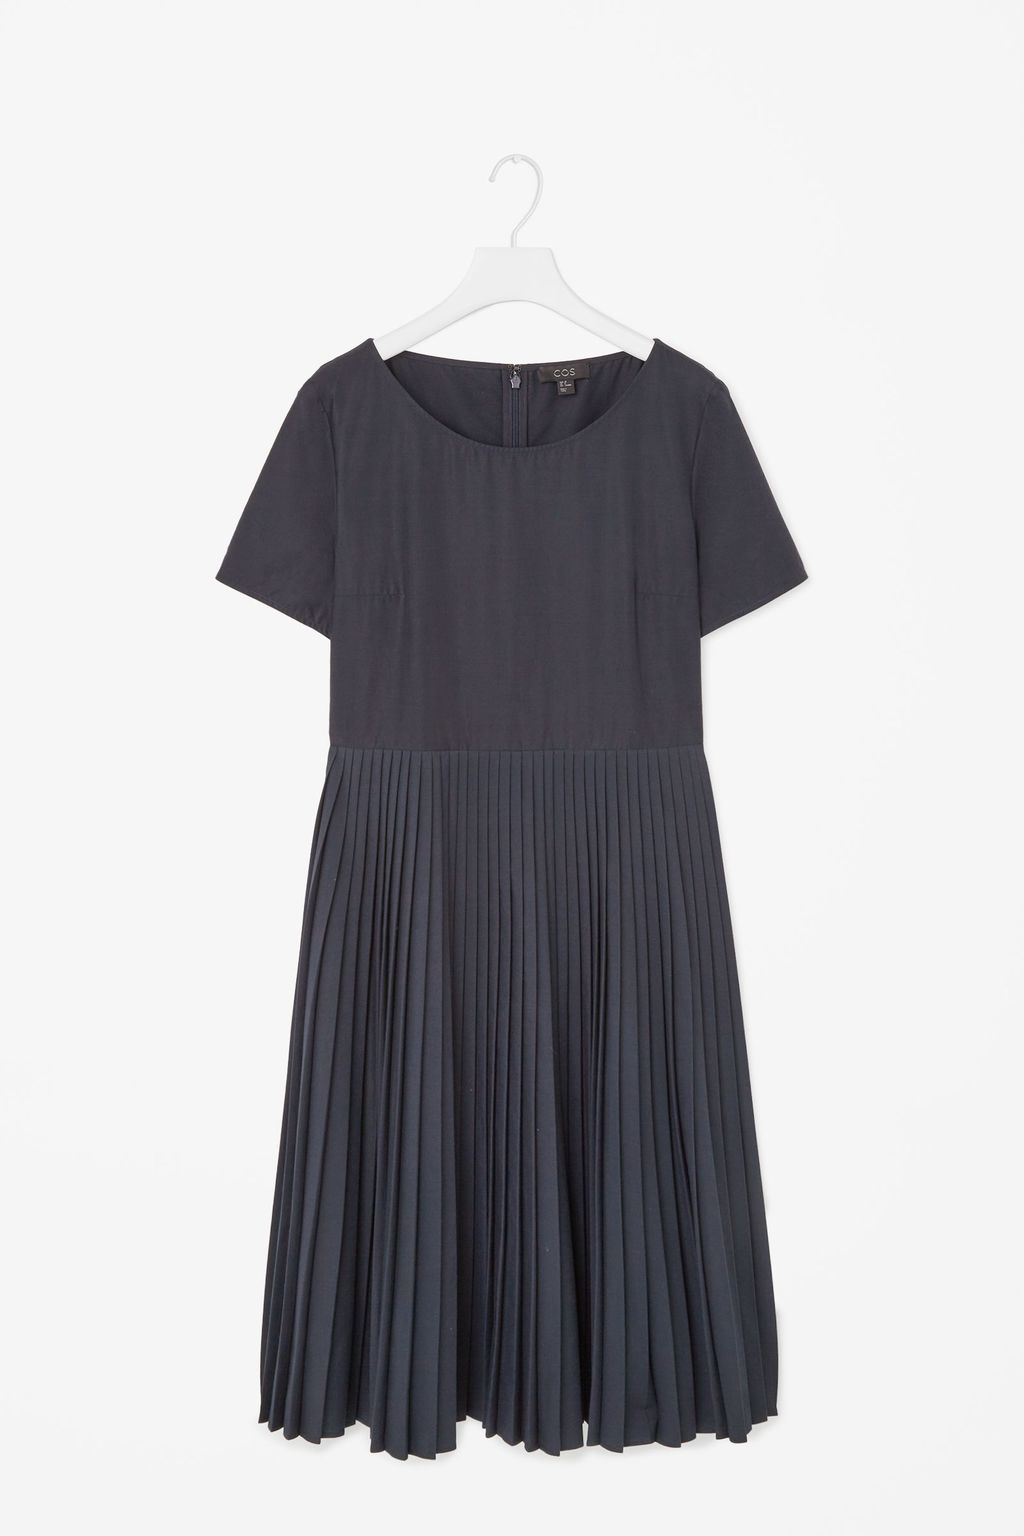 Pleated Poplin Dress - neckline: round neck; pattern: plain; predominant colour: navy; occasions: casual, creative work; length: on the knee; fit: fitted at waist & bust; style: fit & flare; fibres: polyester/polyamide - 100%; hip detail: adds bulk at the hips; sleeve length: short sleeve; sleeve style: standard; pattern type: fabric; texture group: other - light to midweight; season: s/s 2015; wardrobe: basic